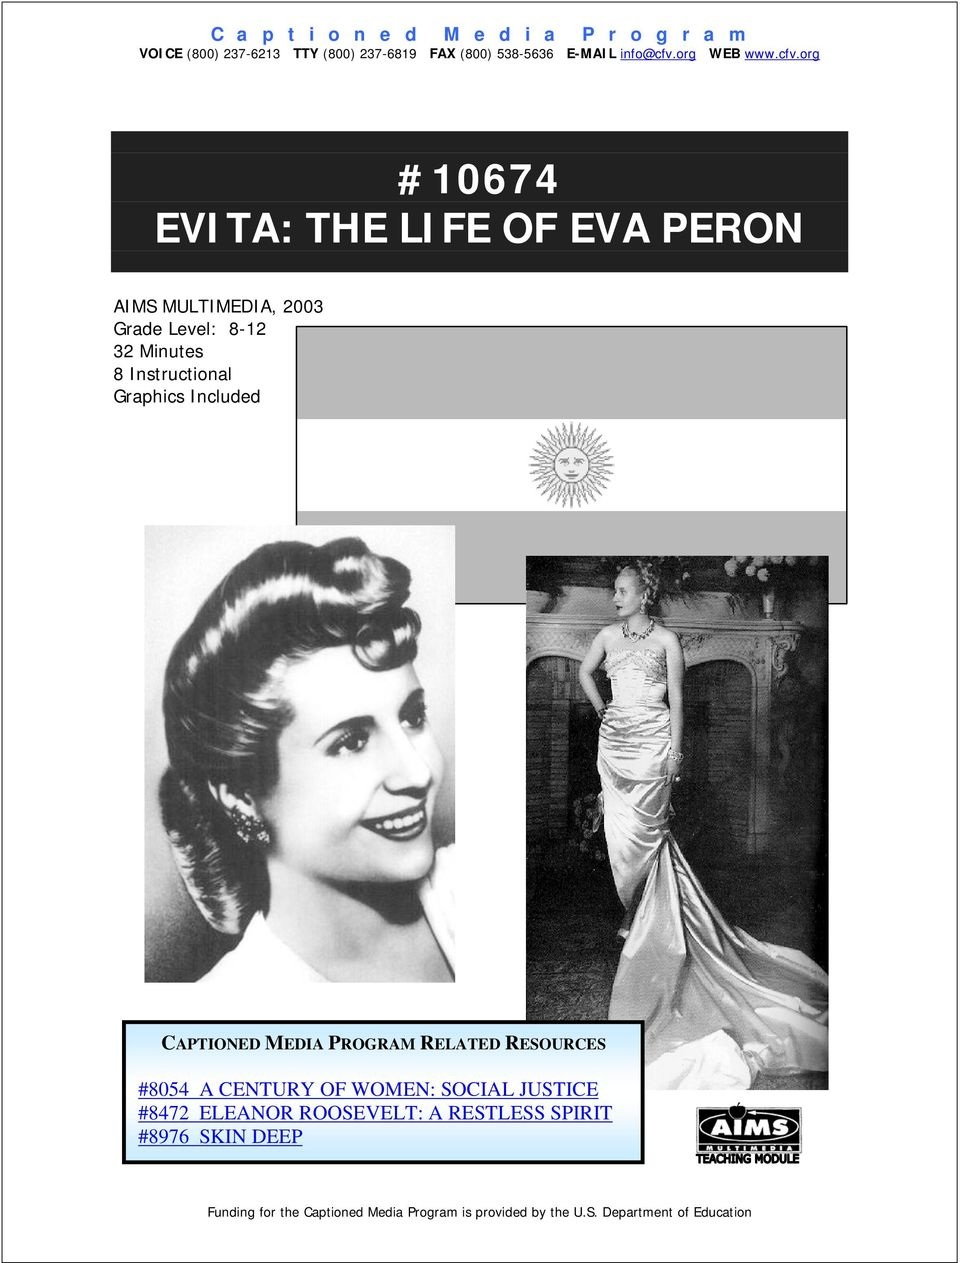 org #10674 EVITA: THE LIFE OF EVA PERON AIMS MULTIMEDIA, 2003 Grade Level: 8-12 32 Minutes 8 Instructional Graphics